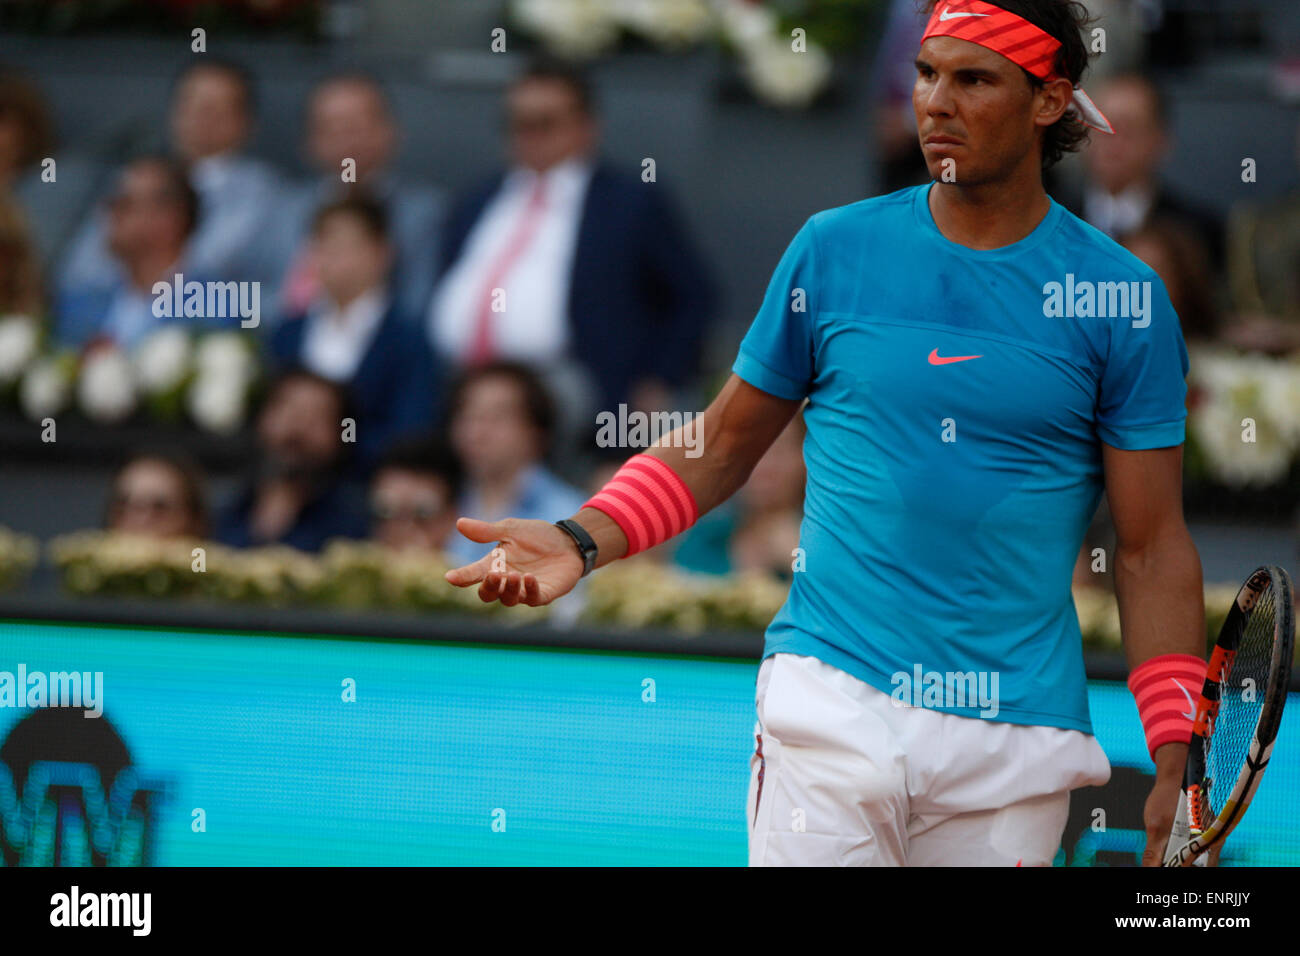 Madrid, Spain. 10th May, 2015. Loss to Andy Murray in final of Madrid Open means Rafael Nadal is not in tennisÕ - Stock Image